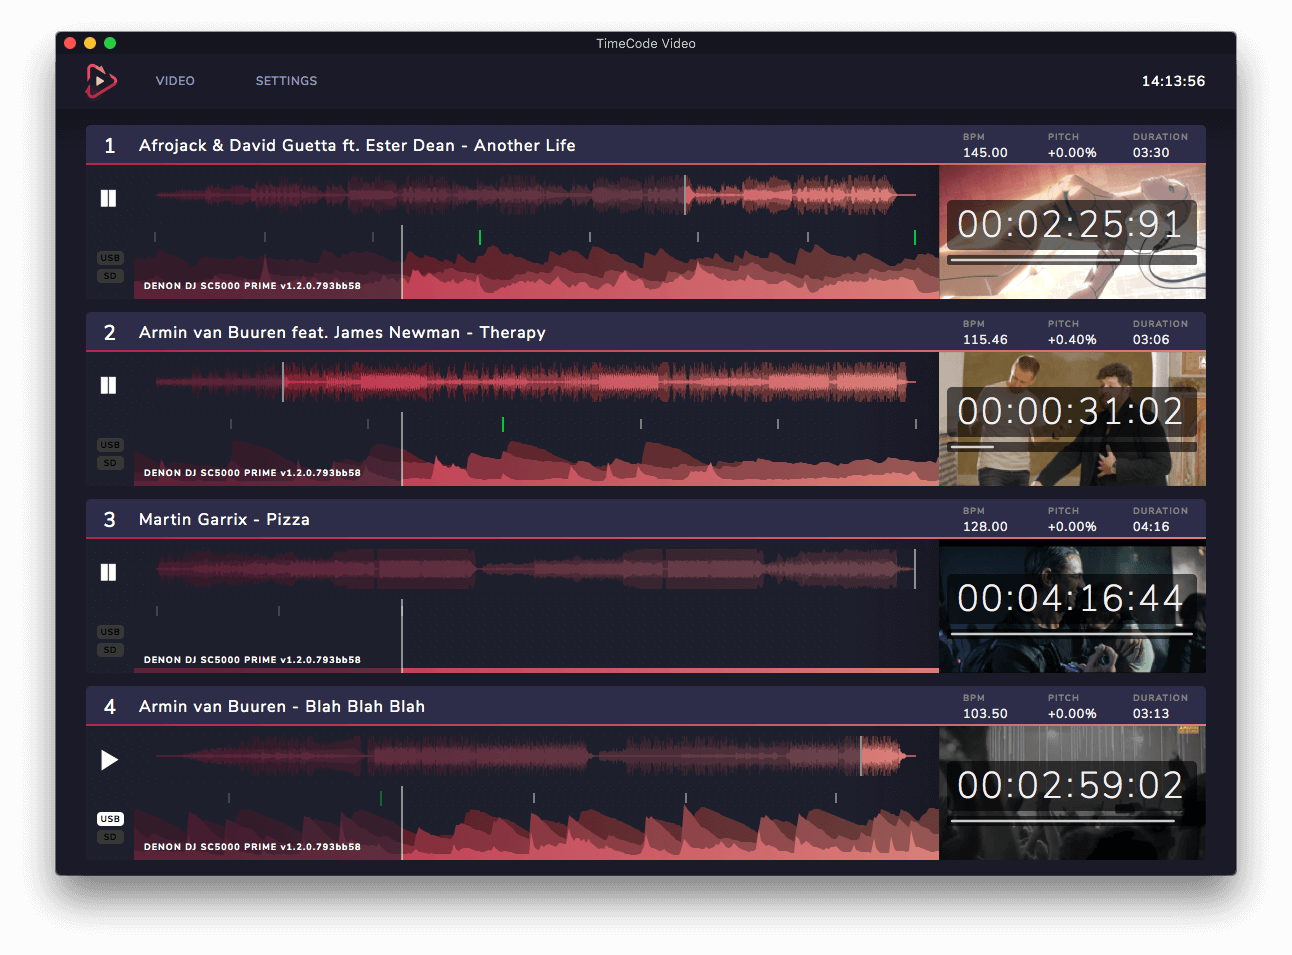 TimeCode overview